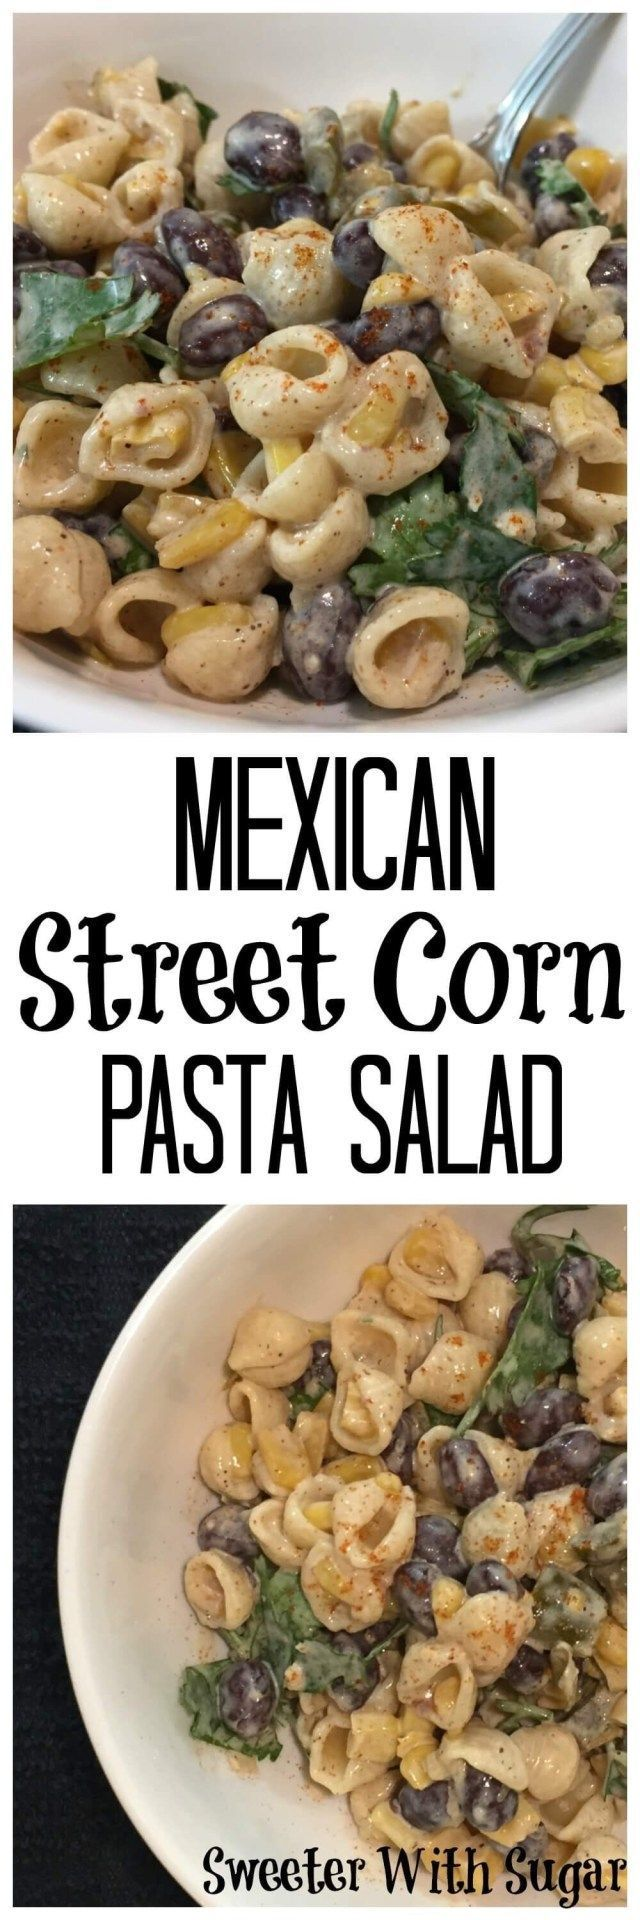 Mexican Street Corn Pasta Salad #mexicanstreetcorn Mexican Street Corn Pasta Salad | Sweeter With Sugar #mexicanstreetcorn Mexican Street Corn Pasta Salad #mexicanstreetcorn Mexican Street Corn Pasta Salad | Sweeter With Sugar #mexicanstreetcorn